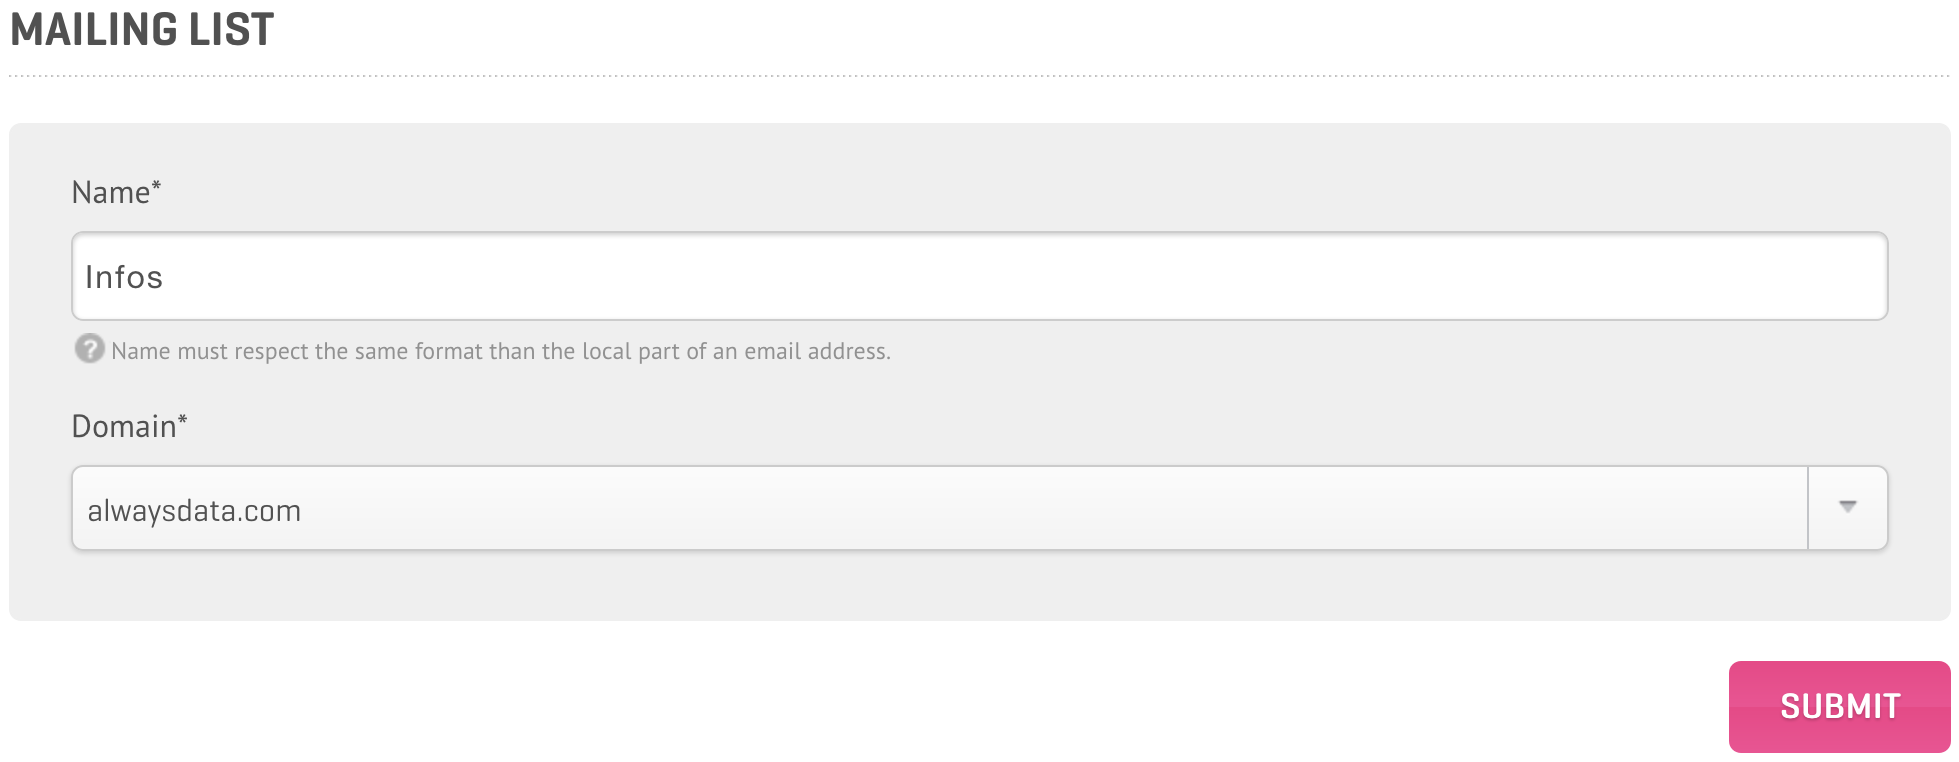 Administration Panel: Create a new Mailing List